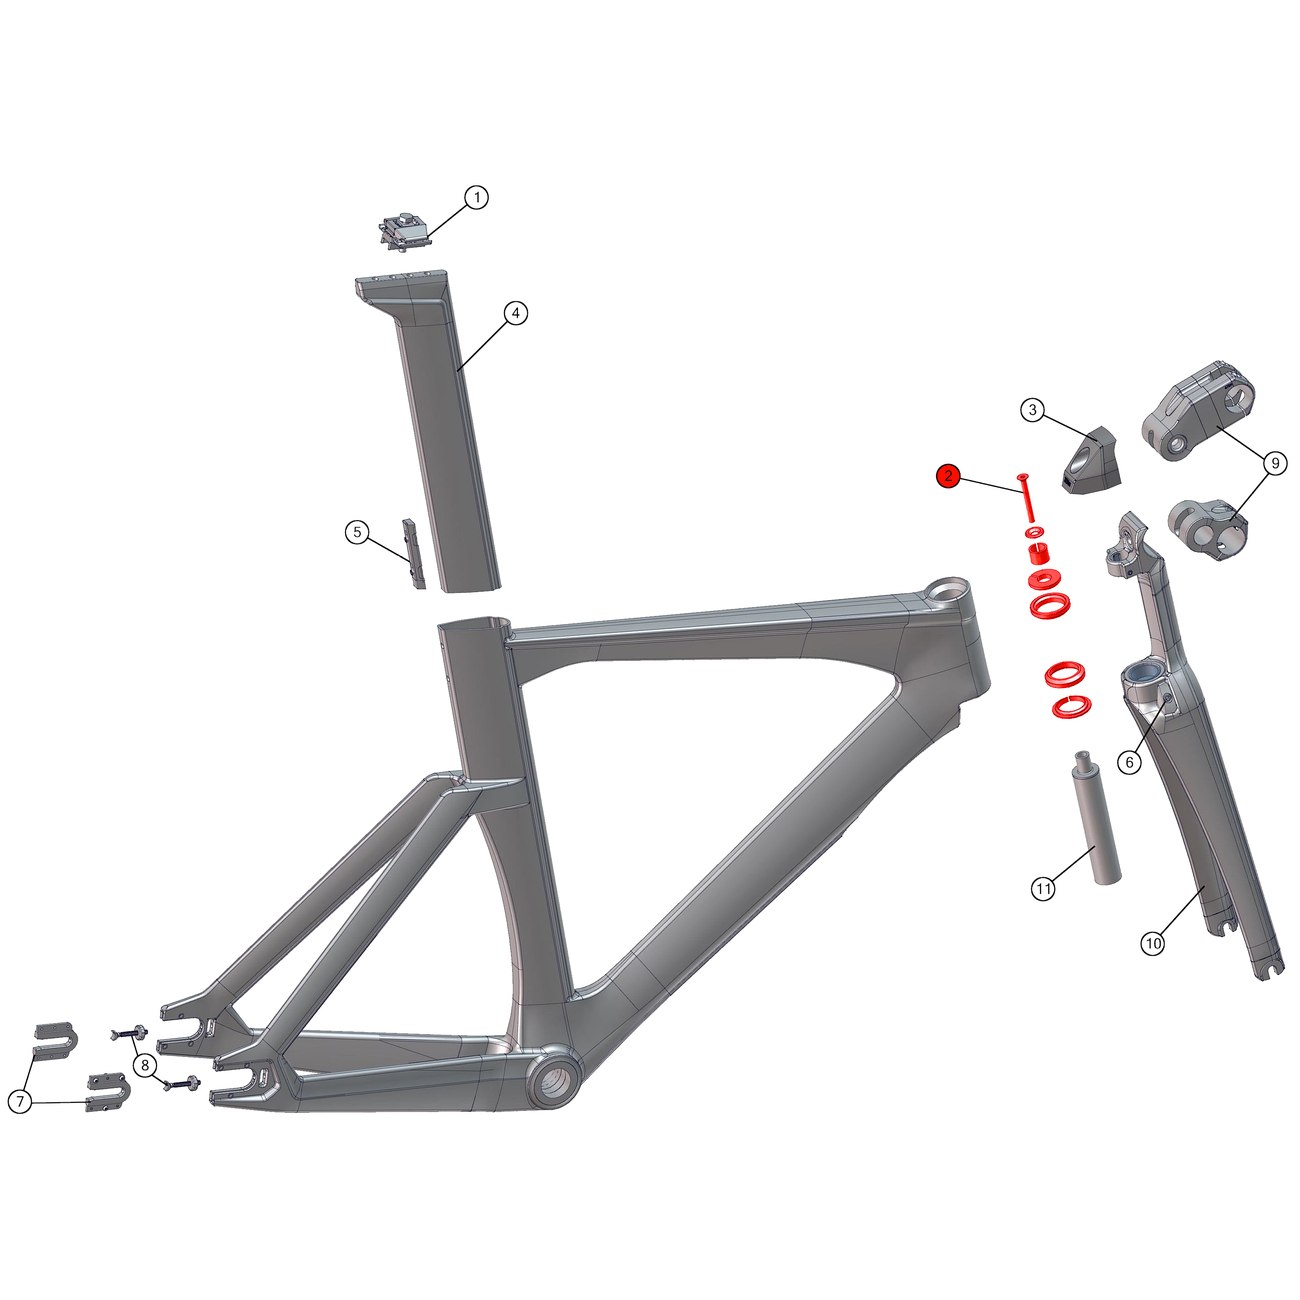 BMC Headset for Trackmachine 01 as from 2014 & Timemachine TM01 (2015-2017) - 213709